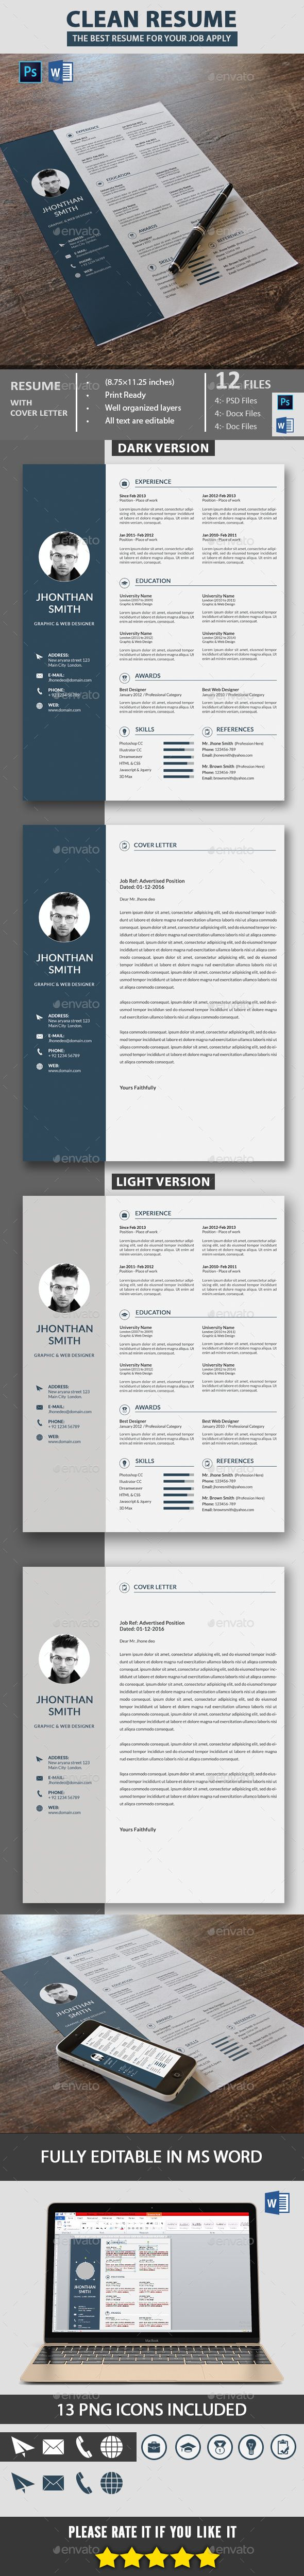 Resume Resume Design TemplateCreative Best 390